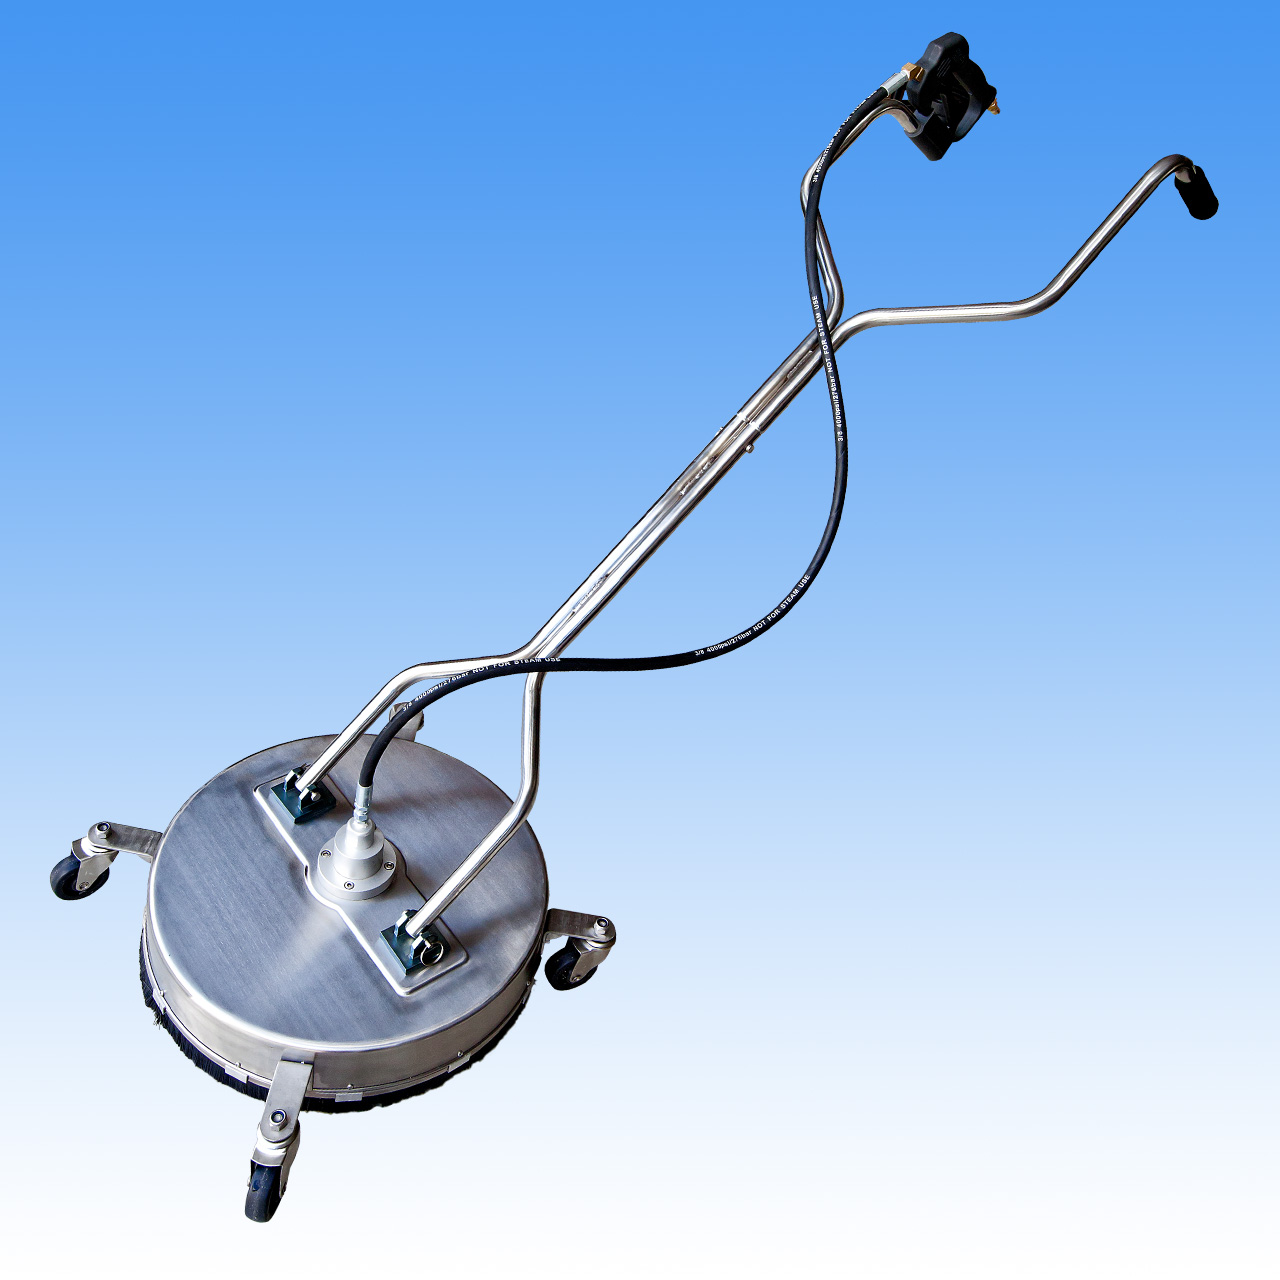 20 Inch Rotary Floor - Surface Cleaner Stainless Steel - 3 Nozzle